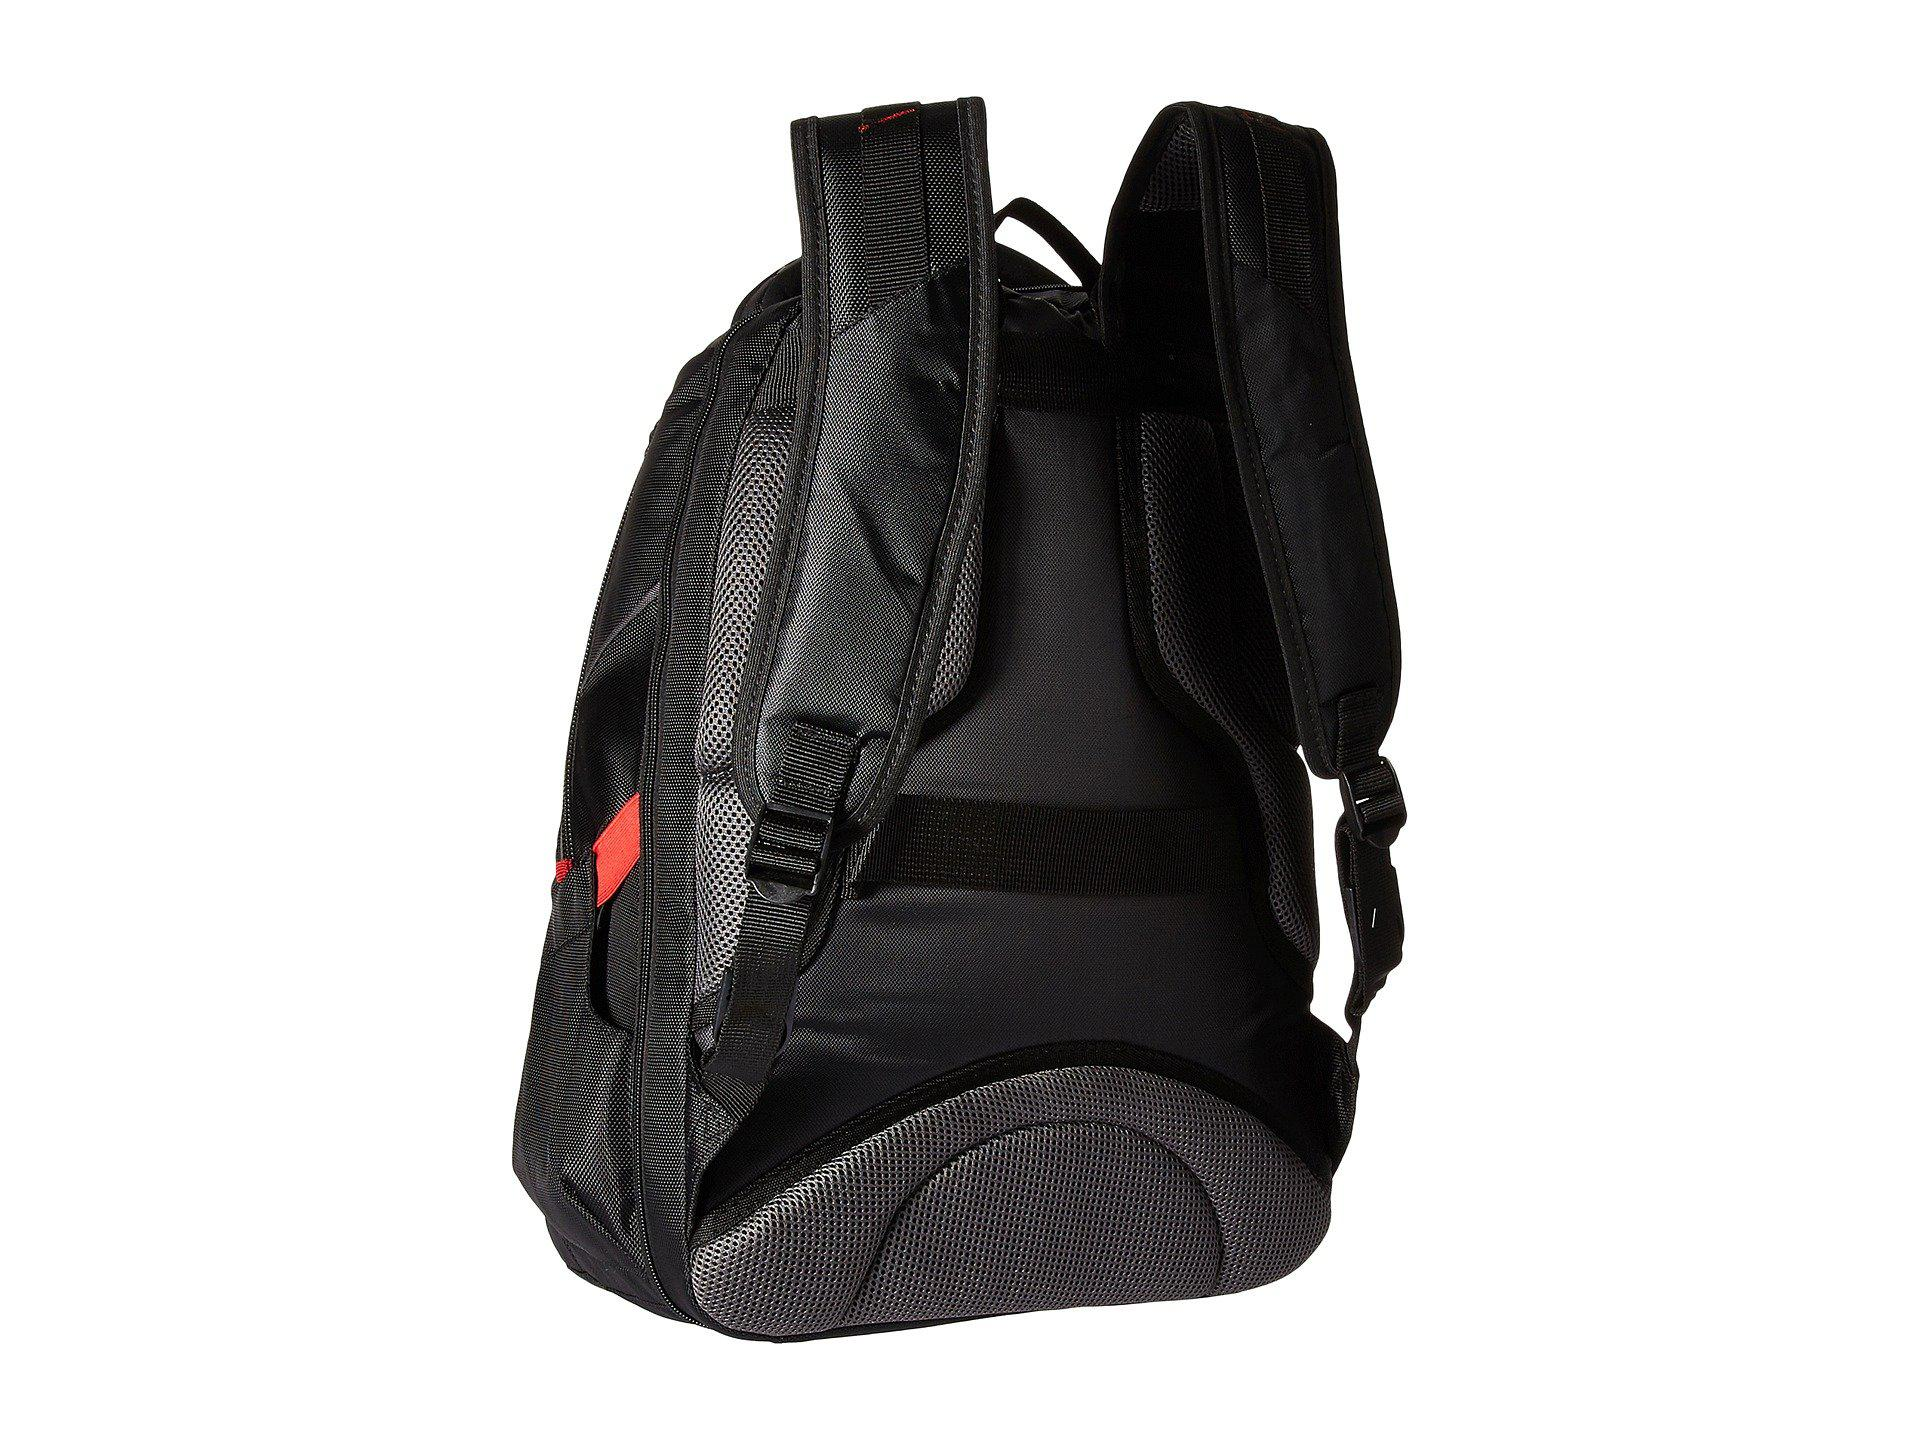 bcd63a9c3 Samsonite Tectonic Perfect Fit Laptop Backpack | The Shred Centre